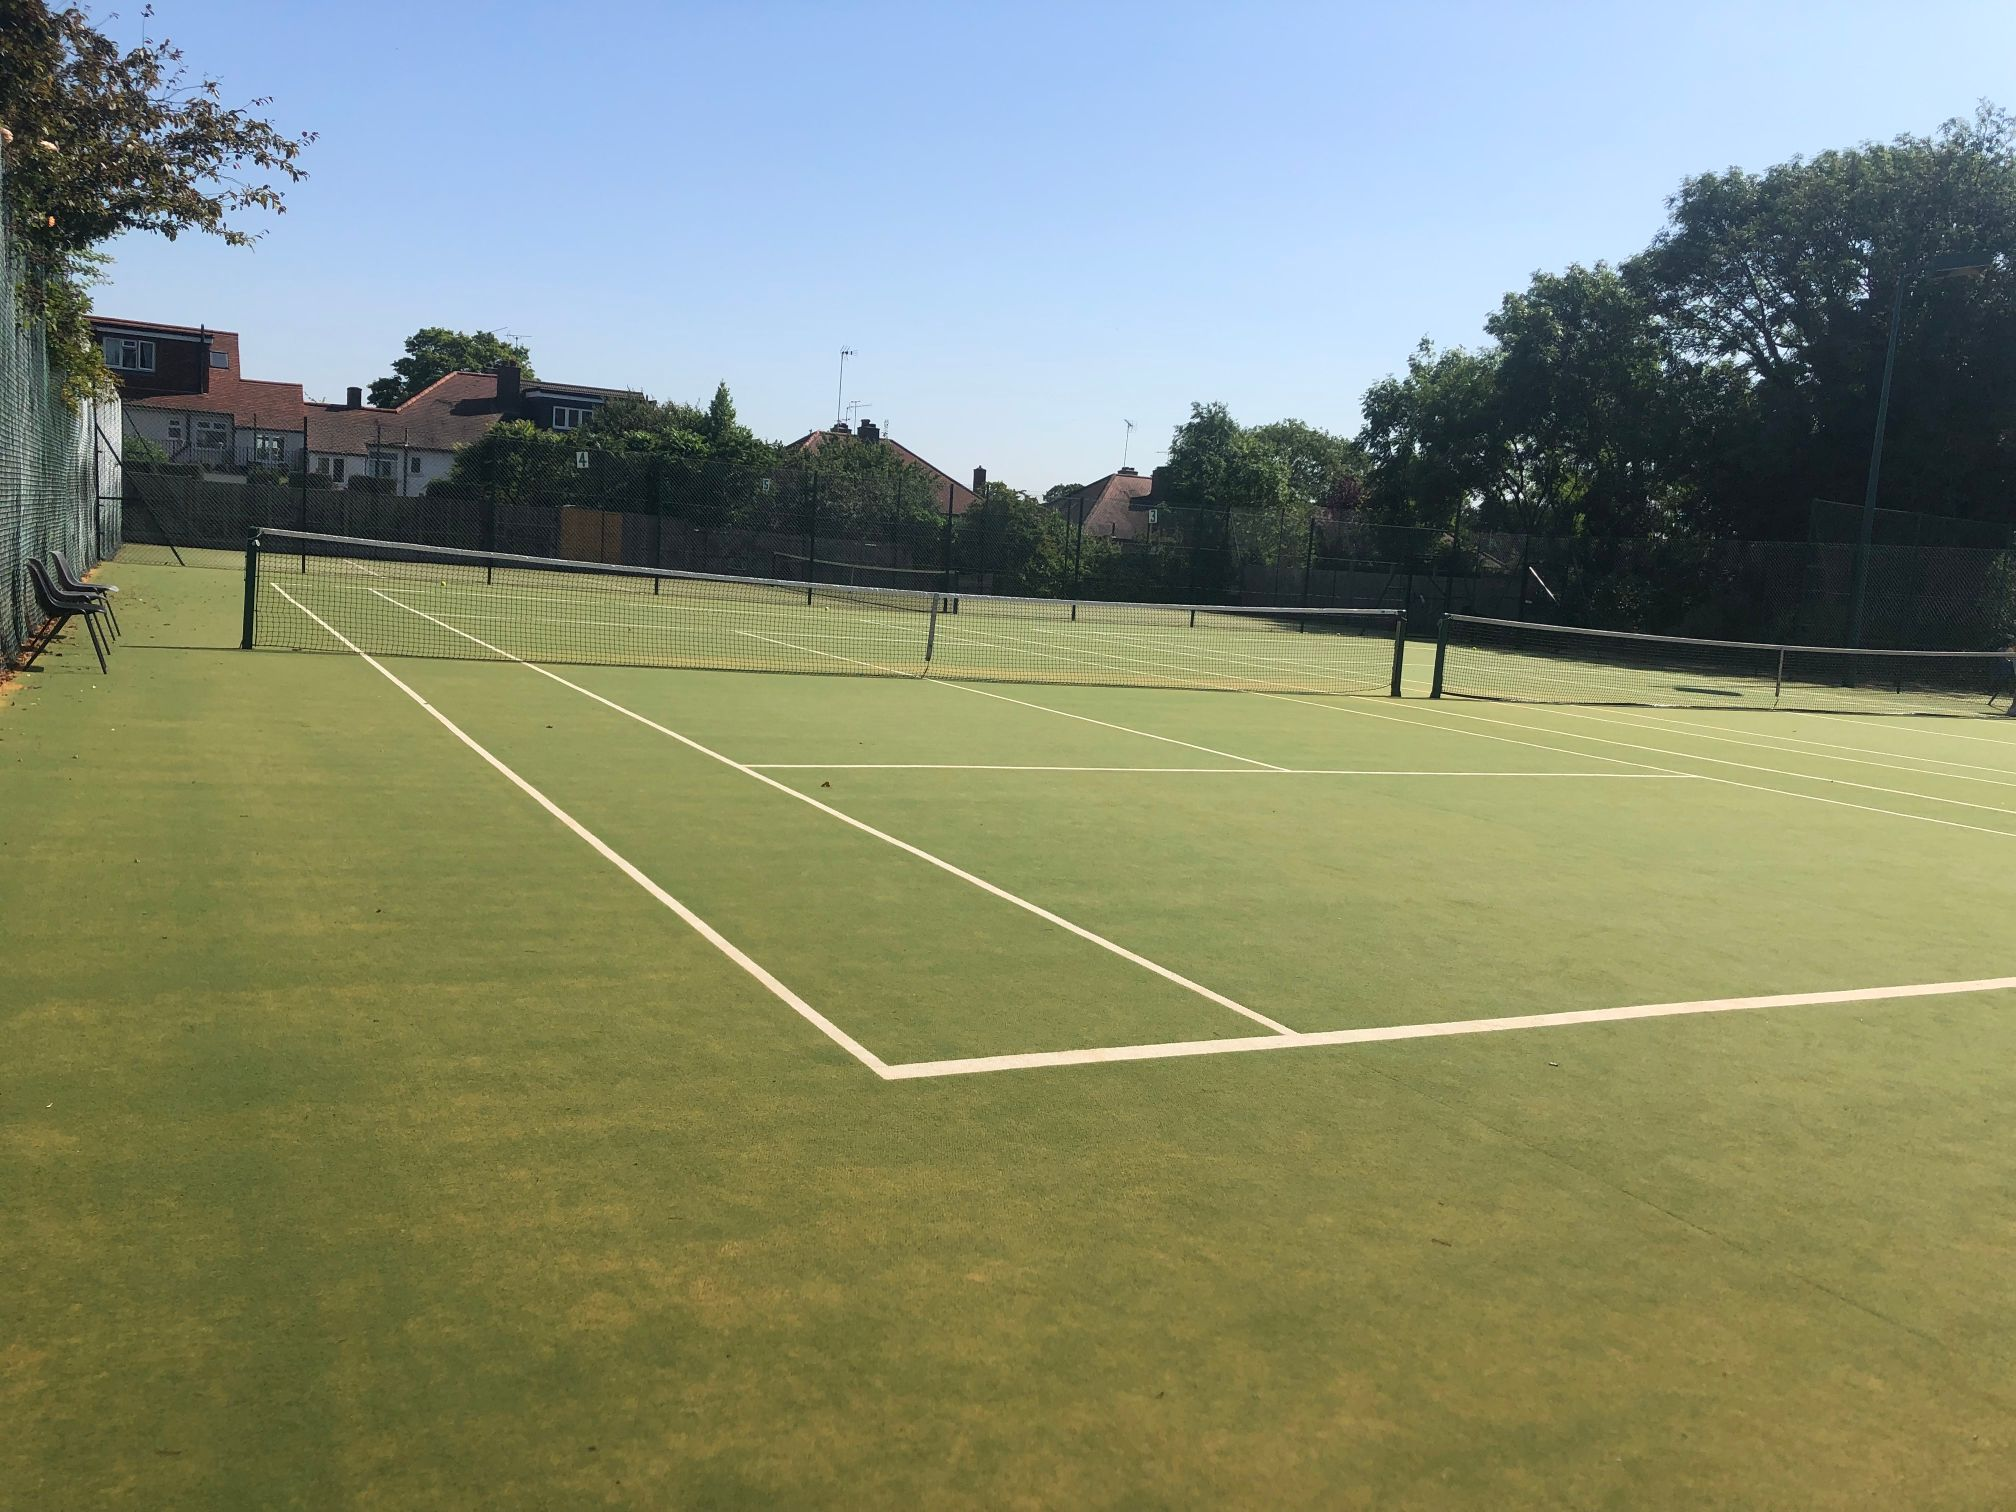 The needle punched technique offers the ideal high performing tennis court surfaces for busy clubs.